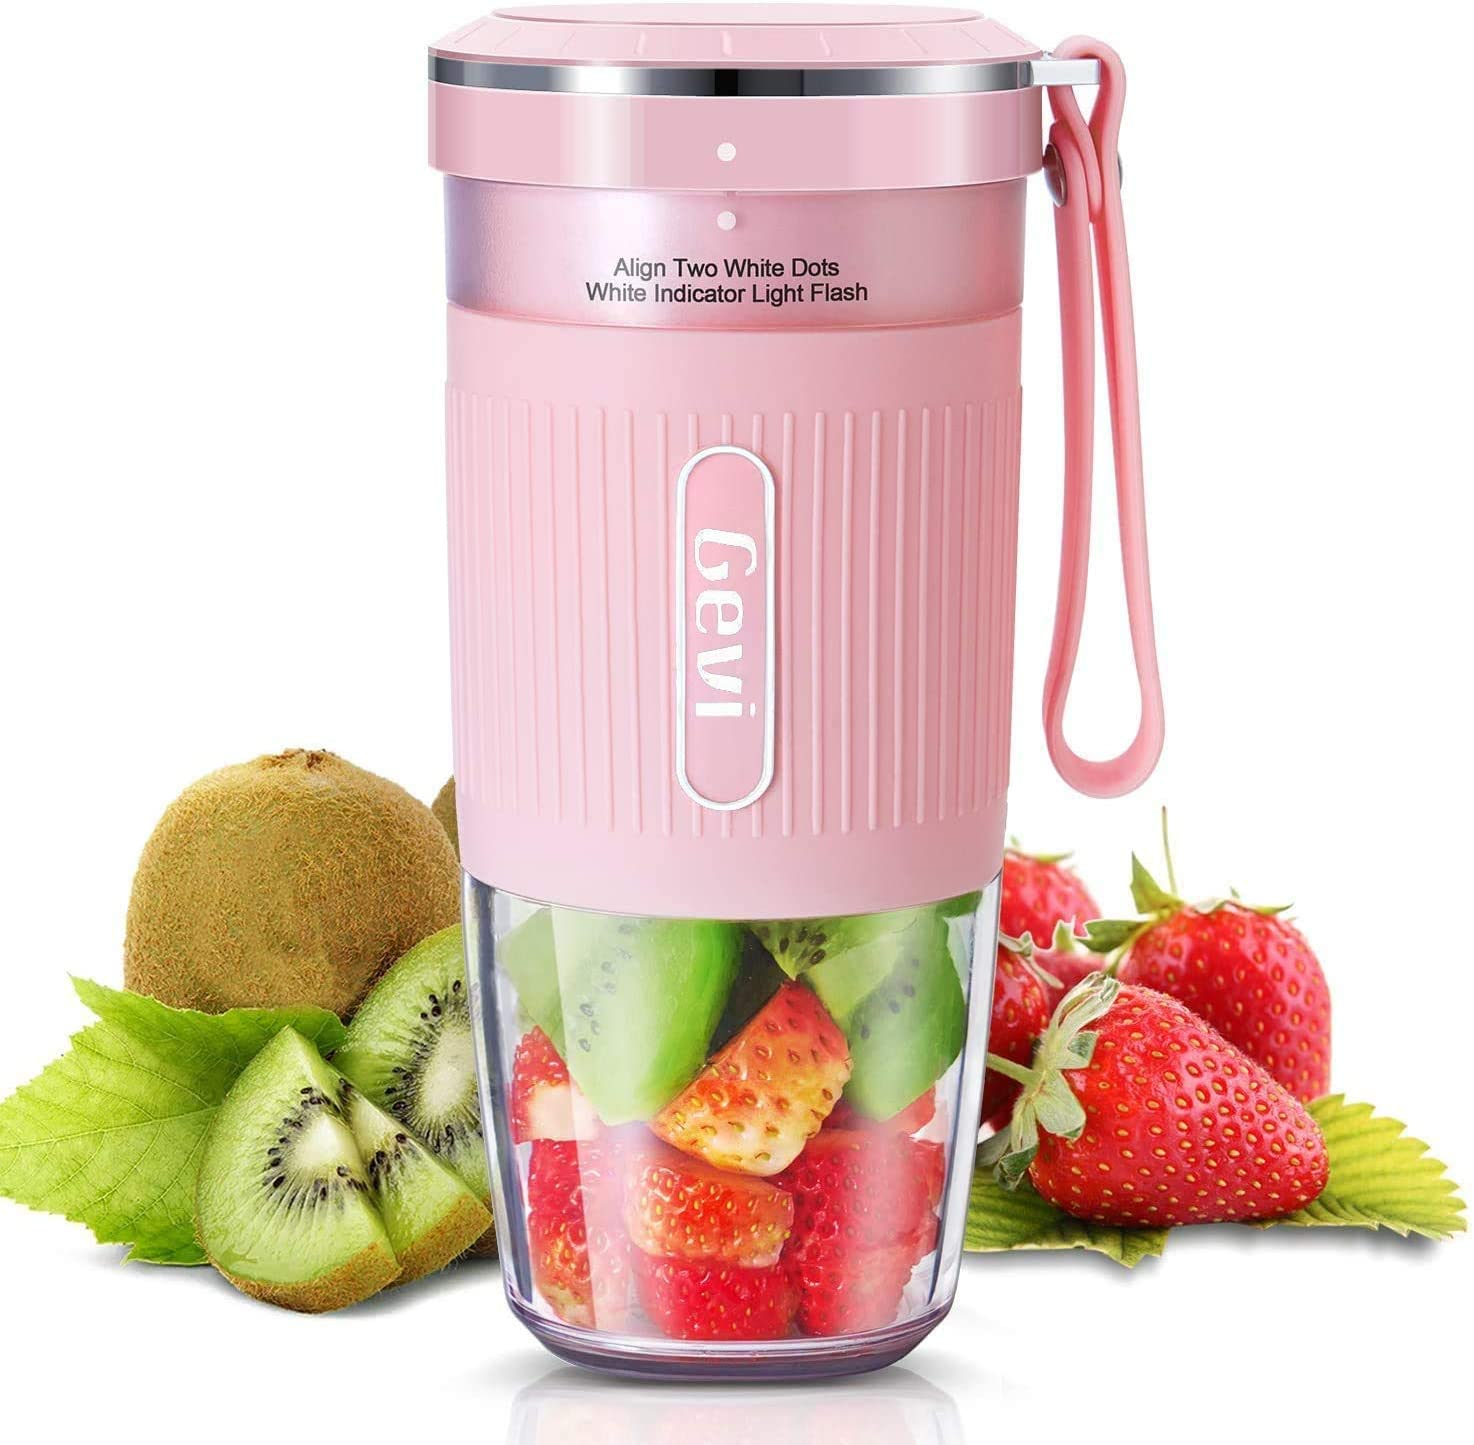 Portable Blender For Juice, Shakes and Smoothies, Cordless Personal Size Blenders With USB Rechargeable, SUS 301 Stainless Steel Blade, BPA Free and IP68 Waterproof, Juicer Mixer Cup For Home, Office, Sports, Travel, Outdoors, Low DB , 300ml, 50W,PINK